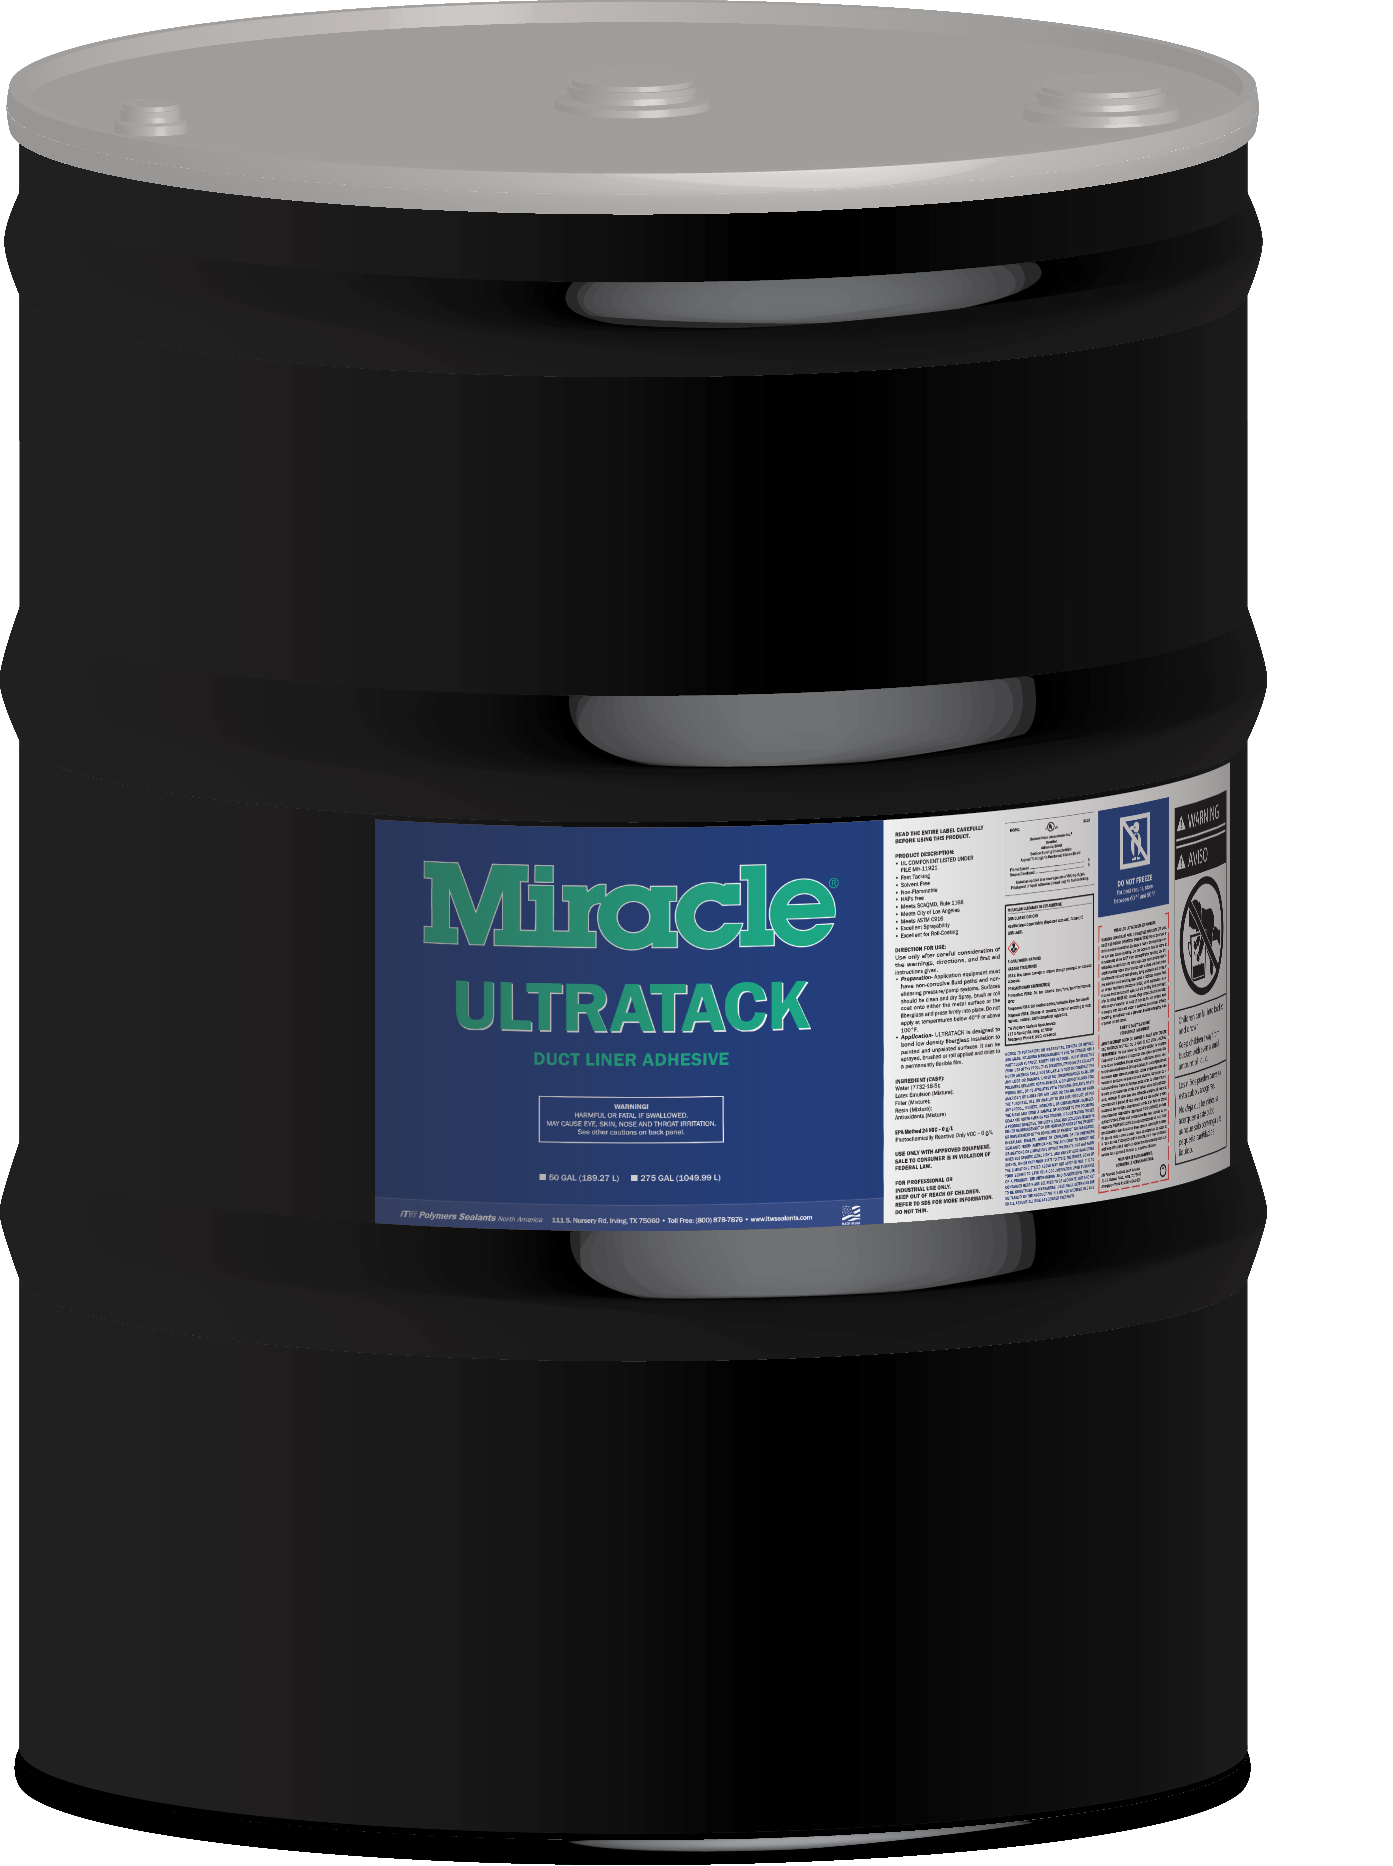 Miracle Ultratrack M-595 52g Drum 2016-04-11